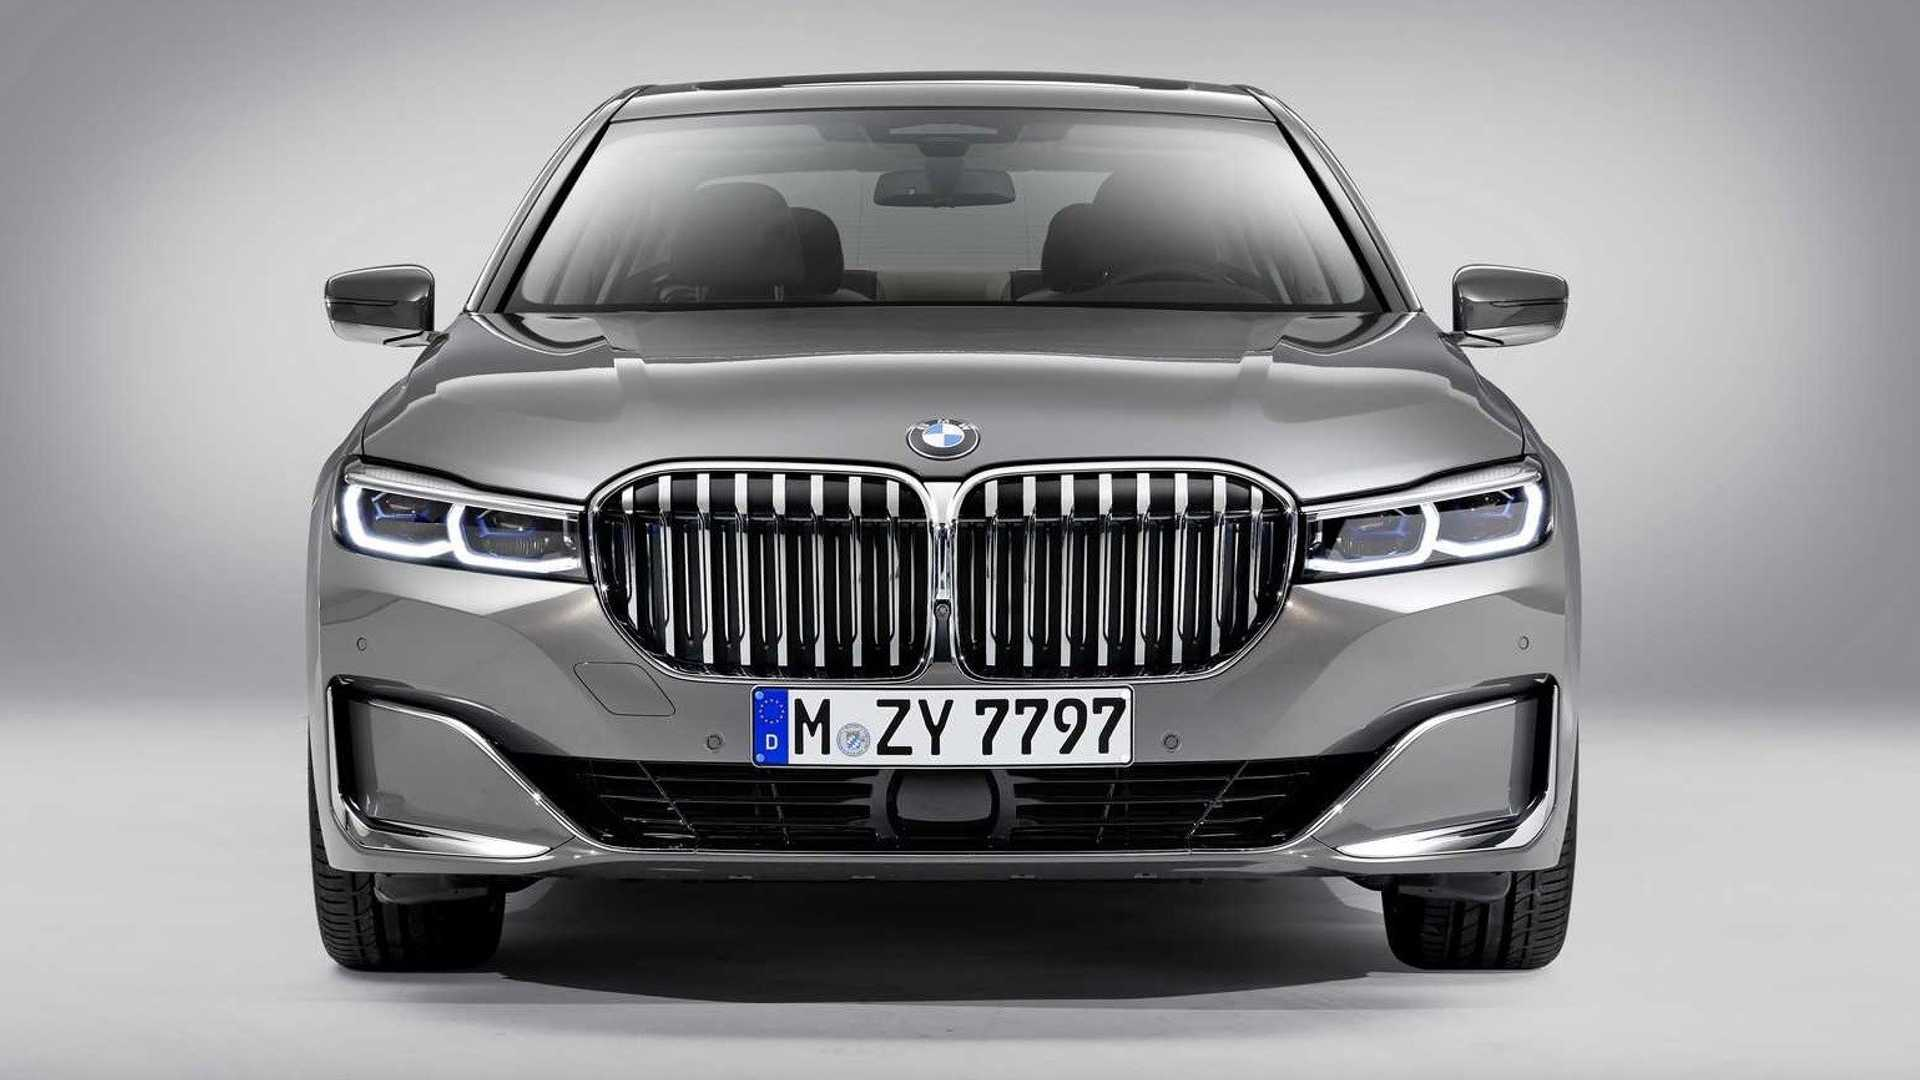 95 Great 2020 BMW 750Li Picture for 2020 BMW 750Li